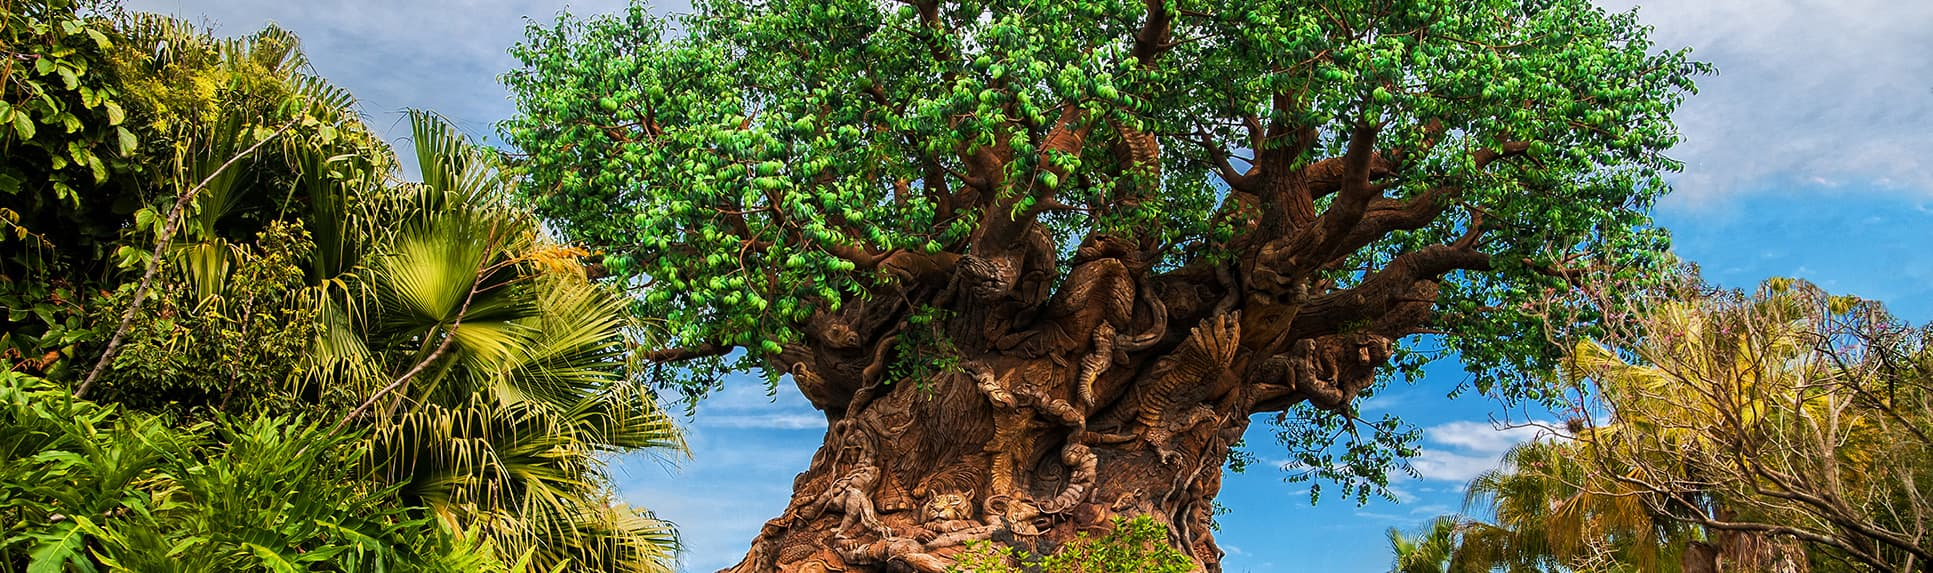 The Tree of Life at Disneys Animal Kingdom park